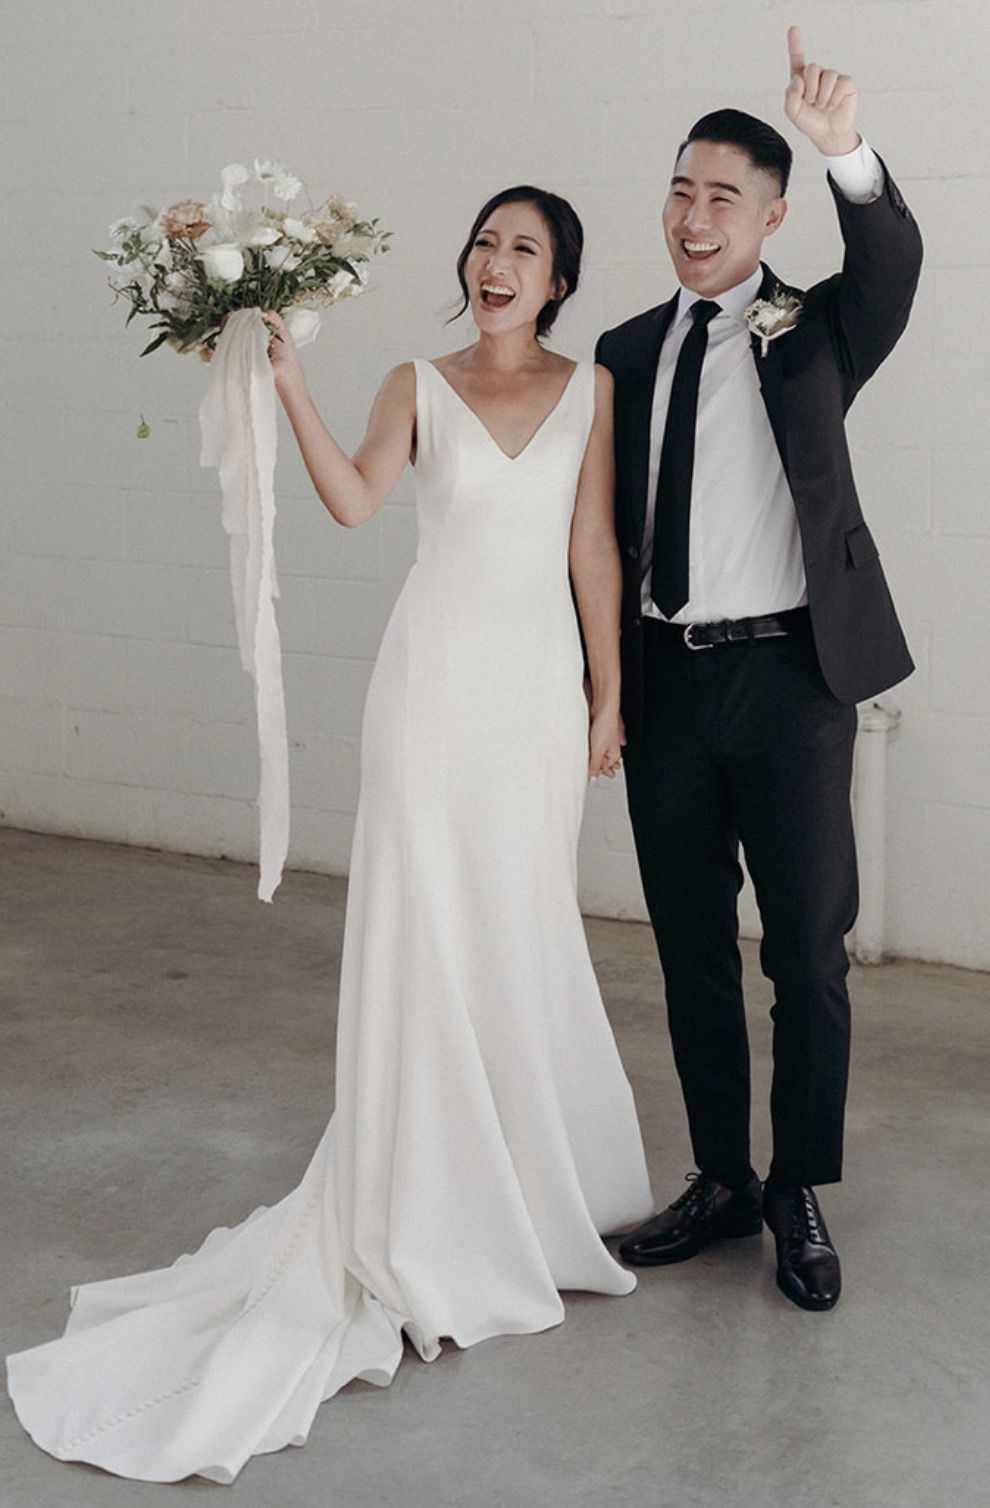 Introducing the Finley gown by Jenny Yoo! This wedding